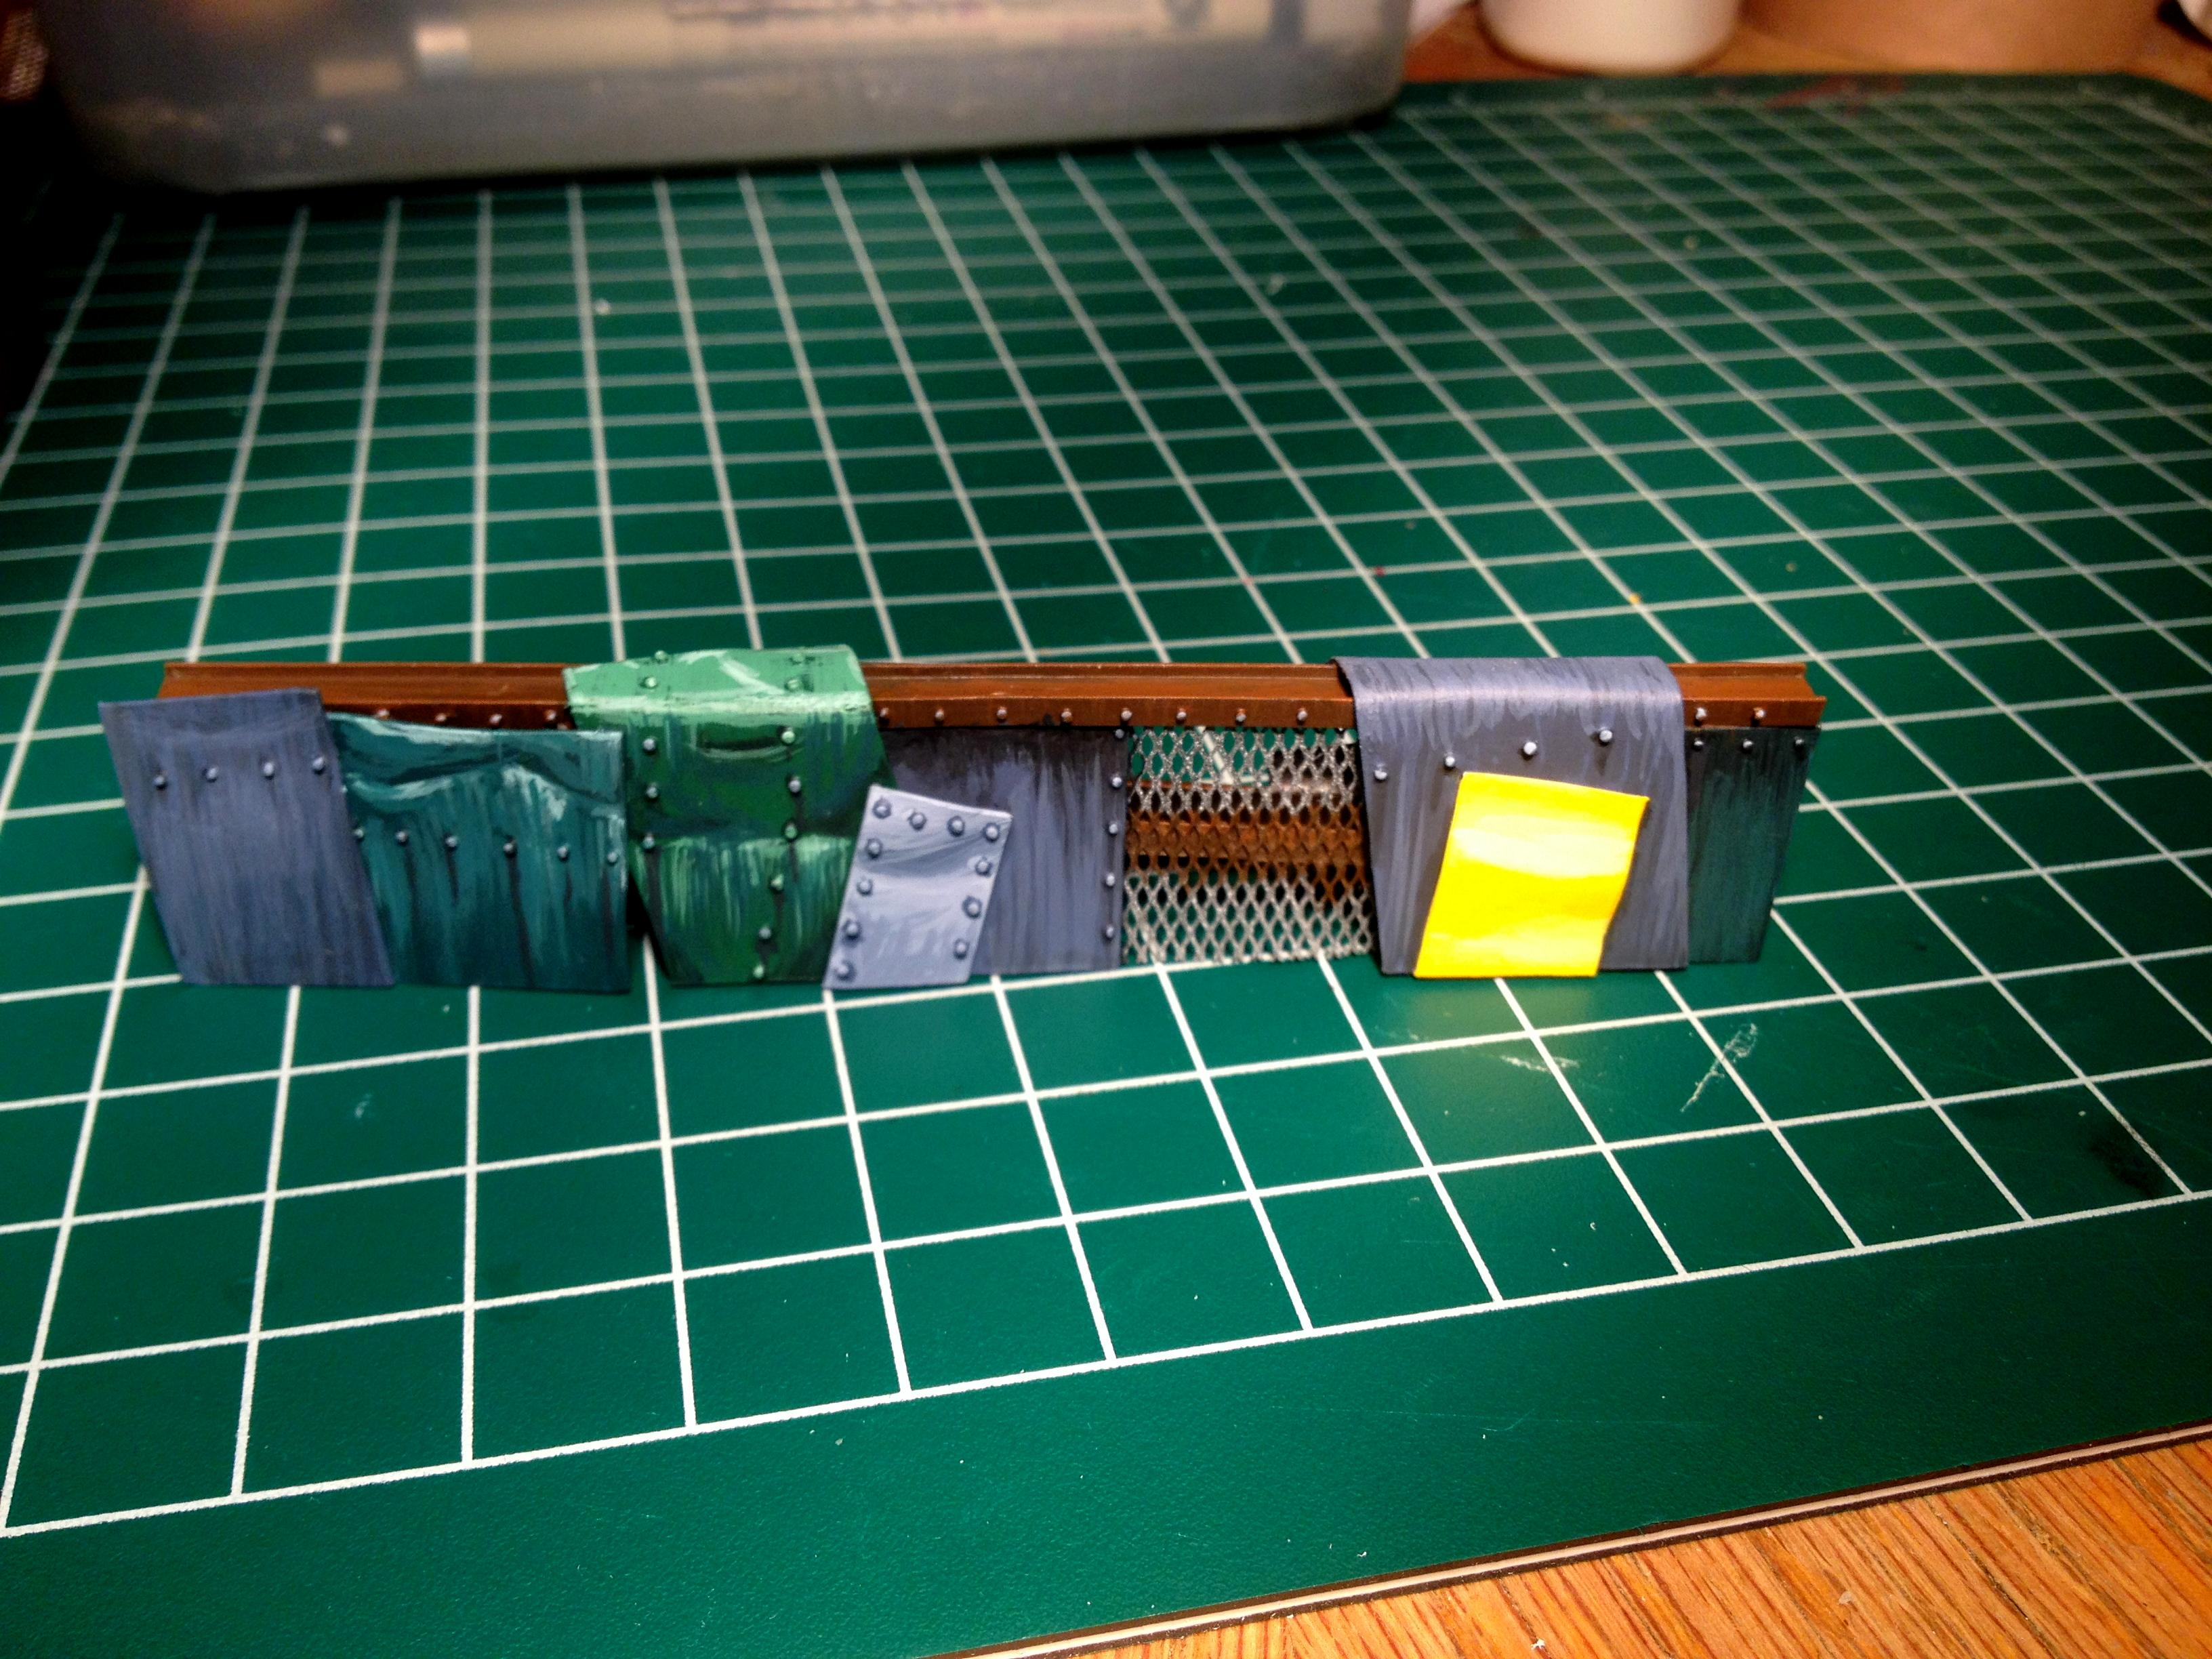 Awesome!, Barricade, Linear Obstacle, Necromunda, Rivets!, Scratch Build, Terrain